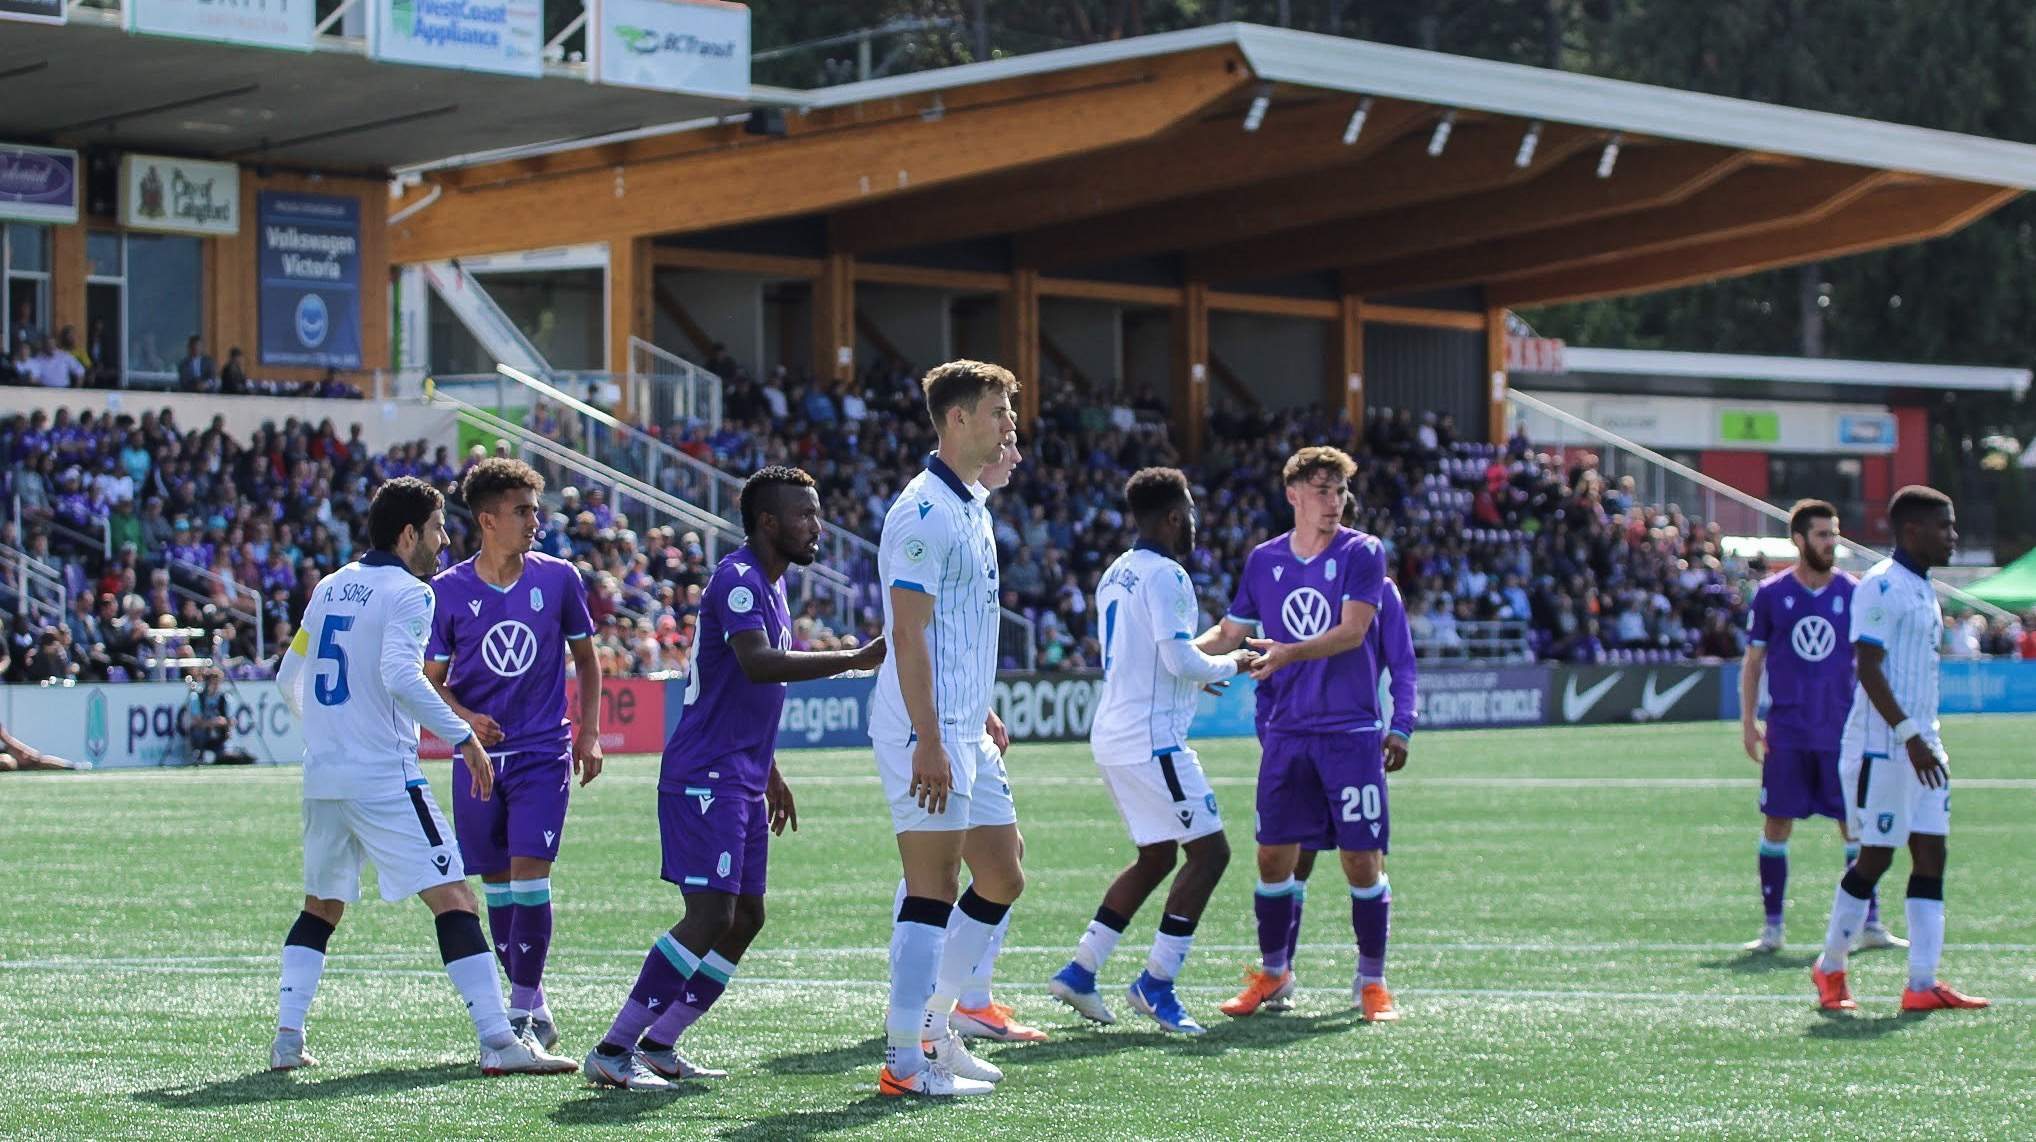 Pacific FC  vs FC Edmonton 23/06/19. Photo by ISN Nathanael Laranjeiras